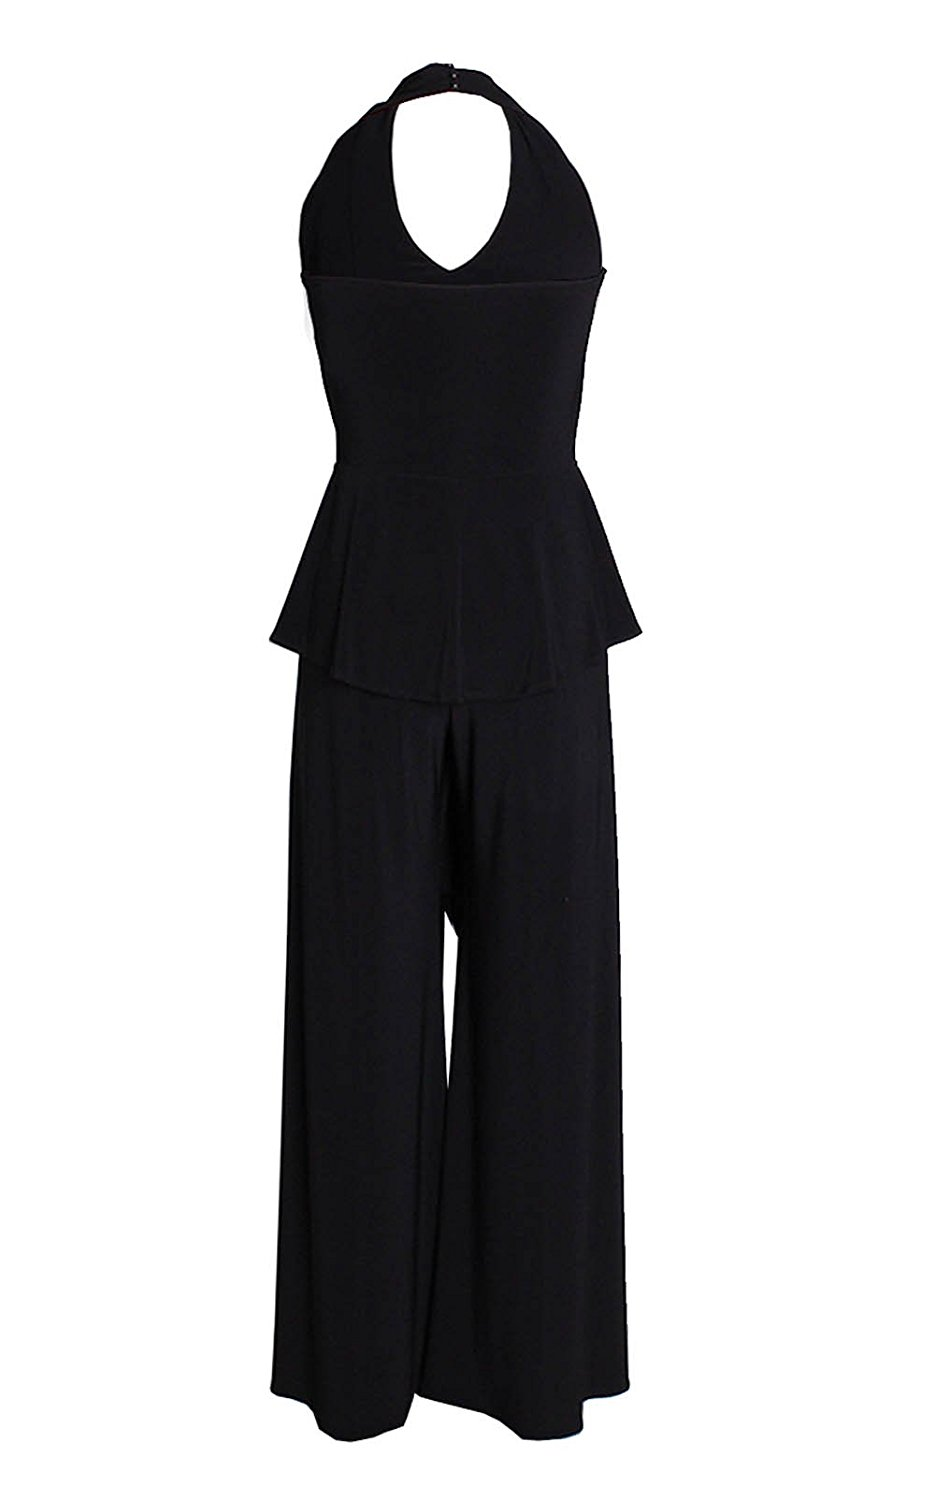 4be61522199a8 Cheap Black Sleeveless Catsuit, find Black Sleeveless Catsuit deals ...